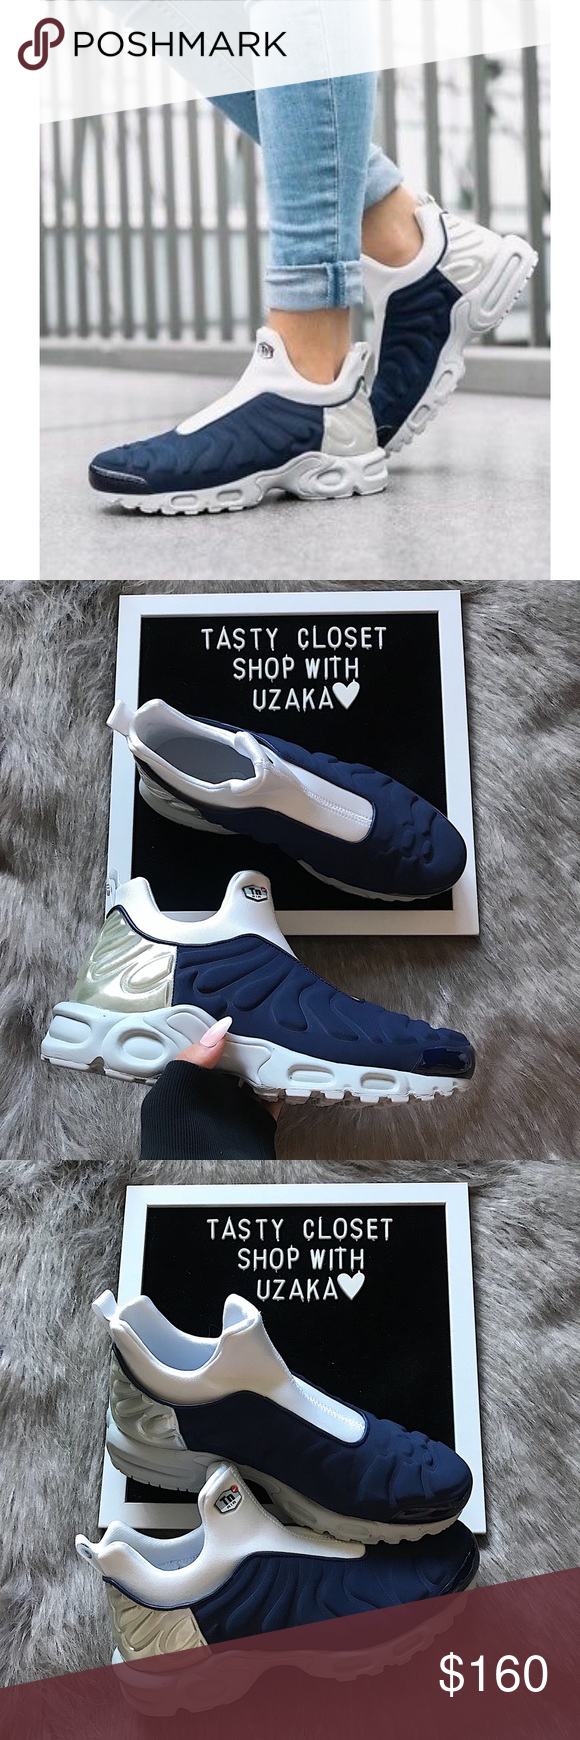 1c1415865f Nike air max plus slip sp sneakers Nike air max plus slip sp sneakers New  with box, without lid Midnight navy/metallic silver Nike Shoes Sneakers